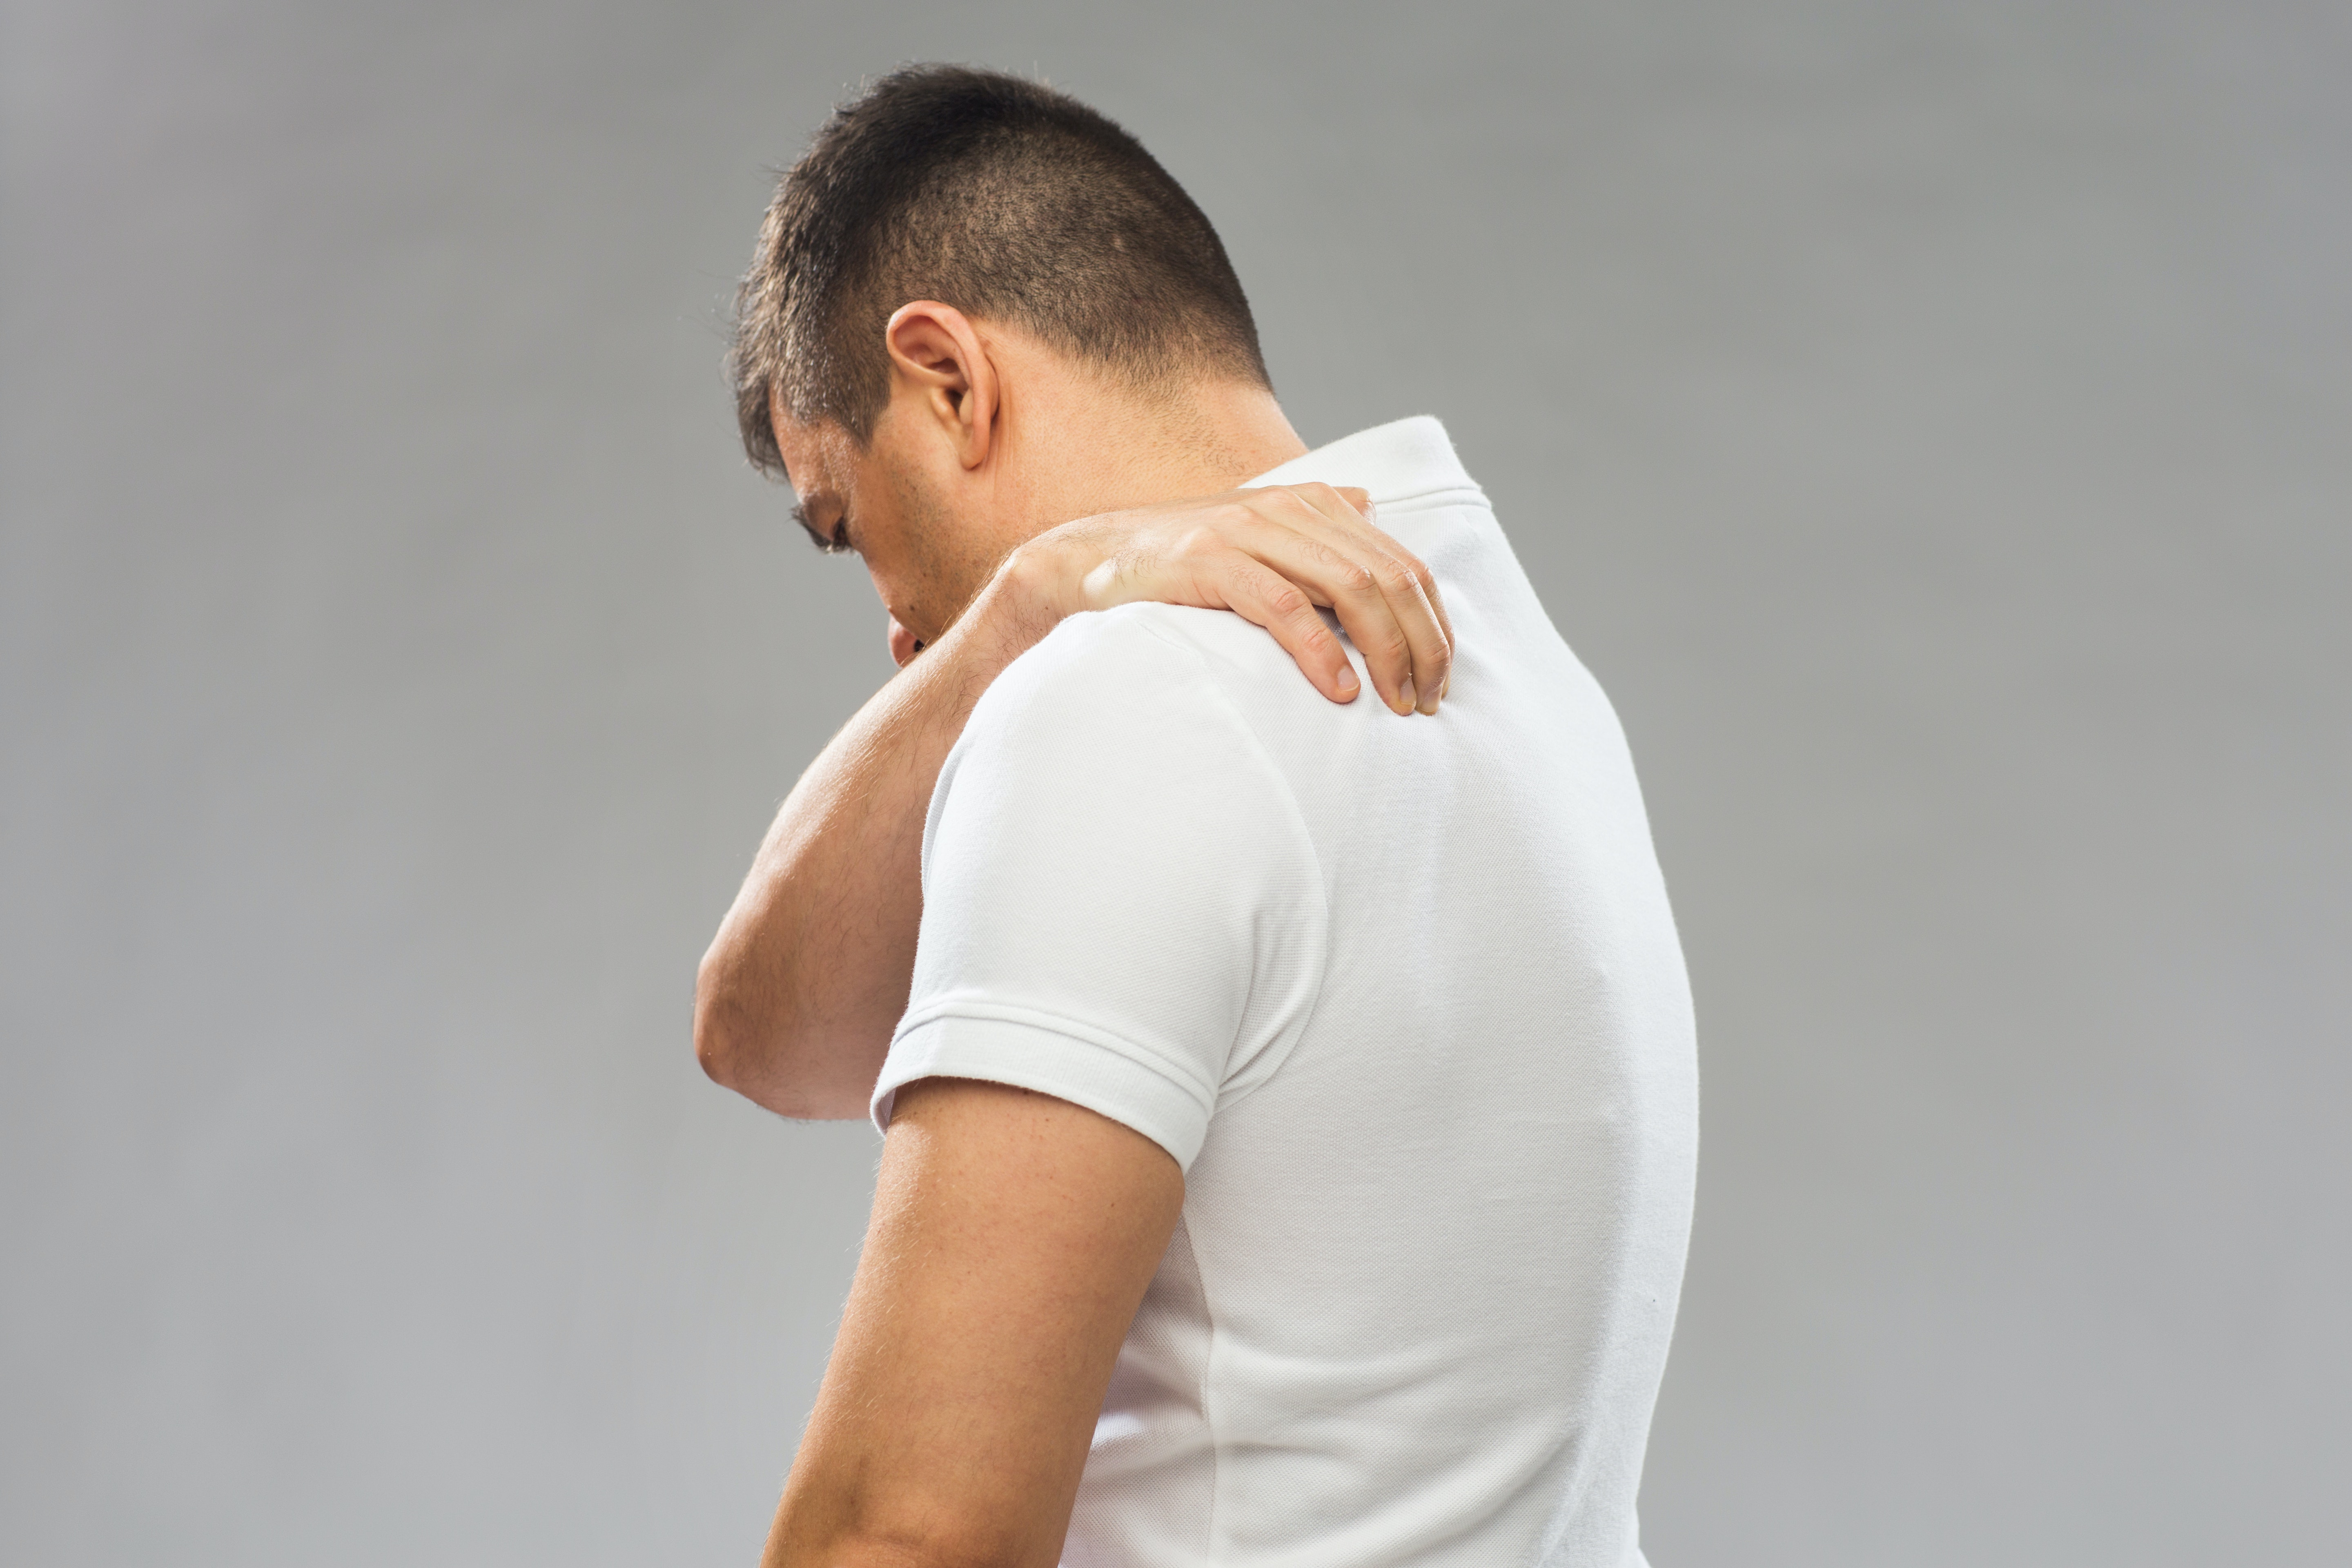 An image depicting a person suffering from rib pain in the upper back symptoms